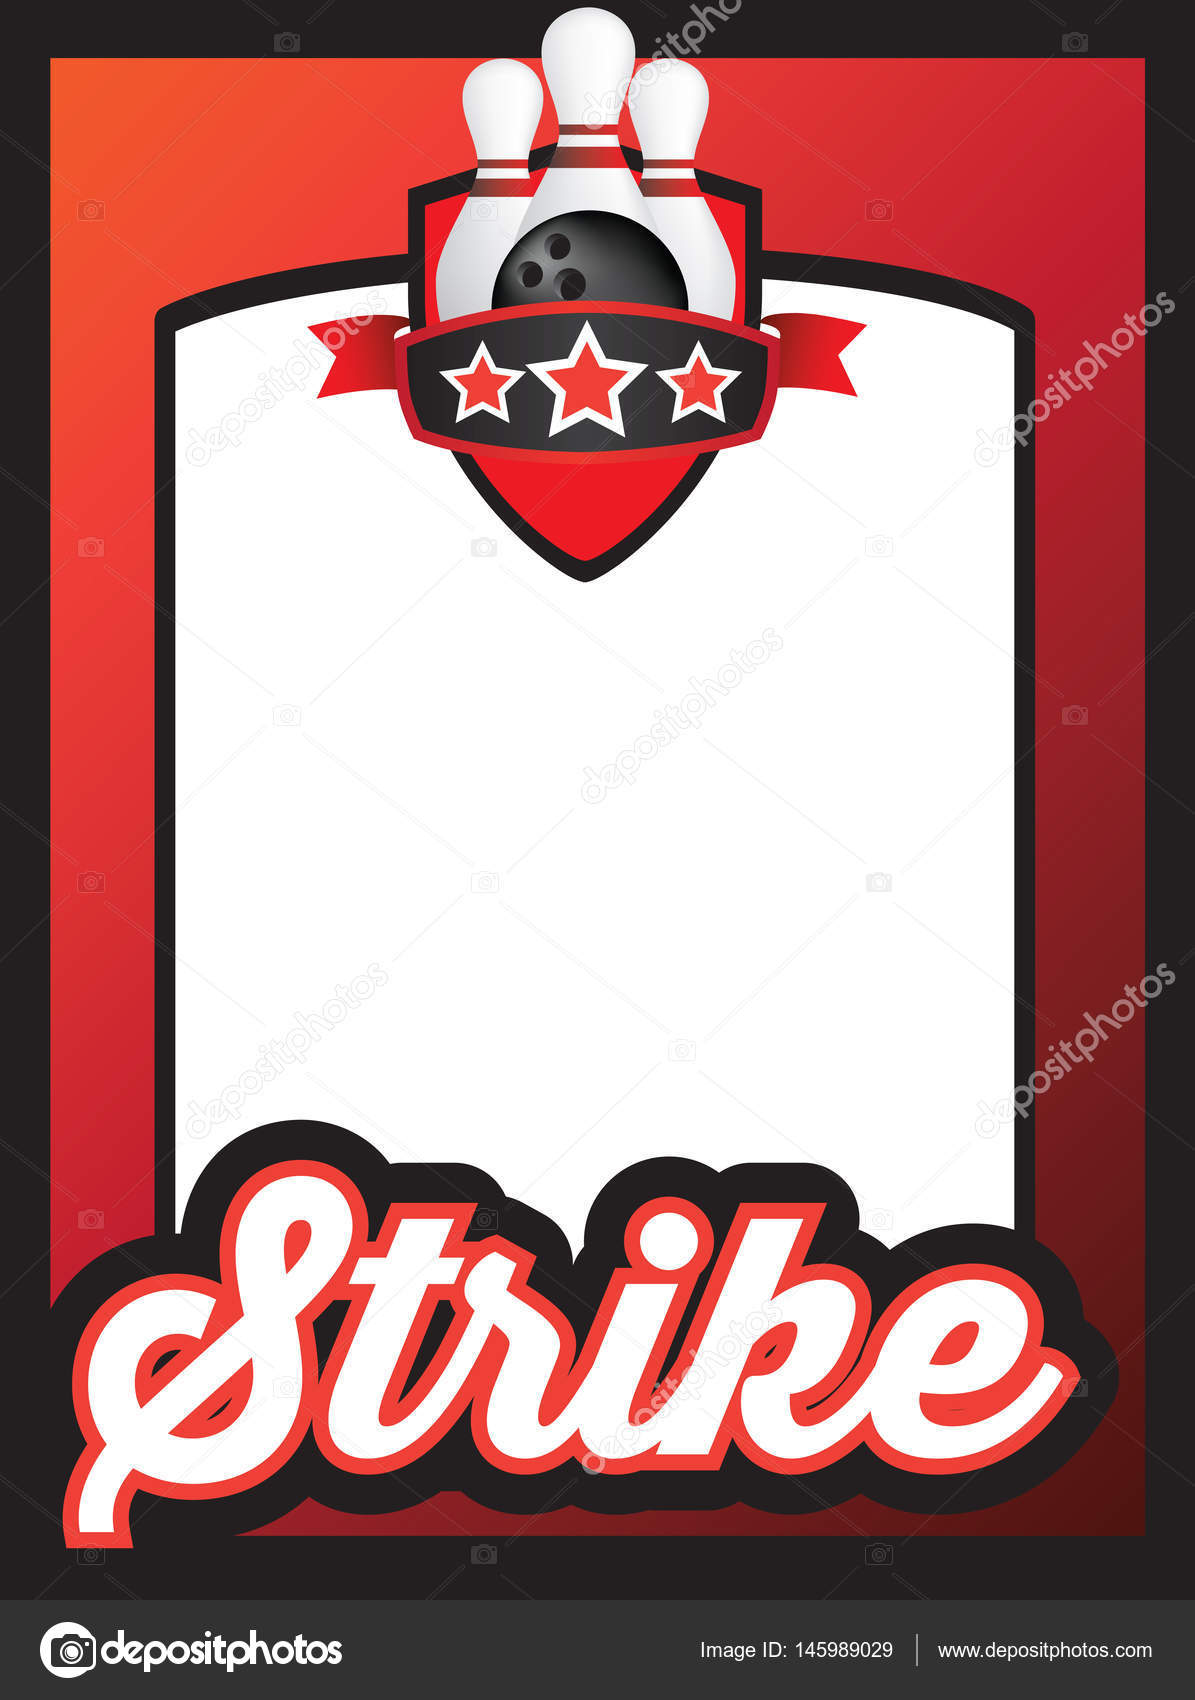 poster template for ten pin bowling club or league — Stock Vector ...